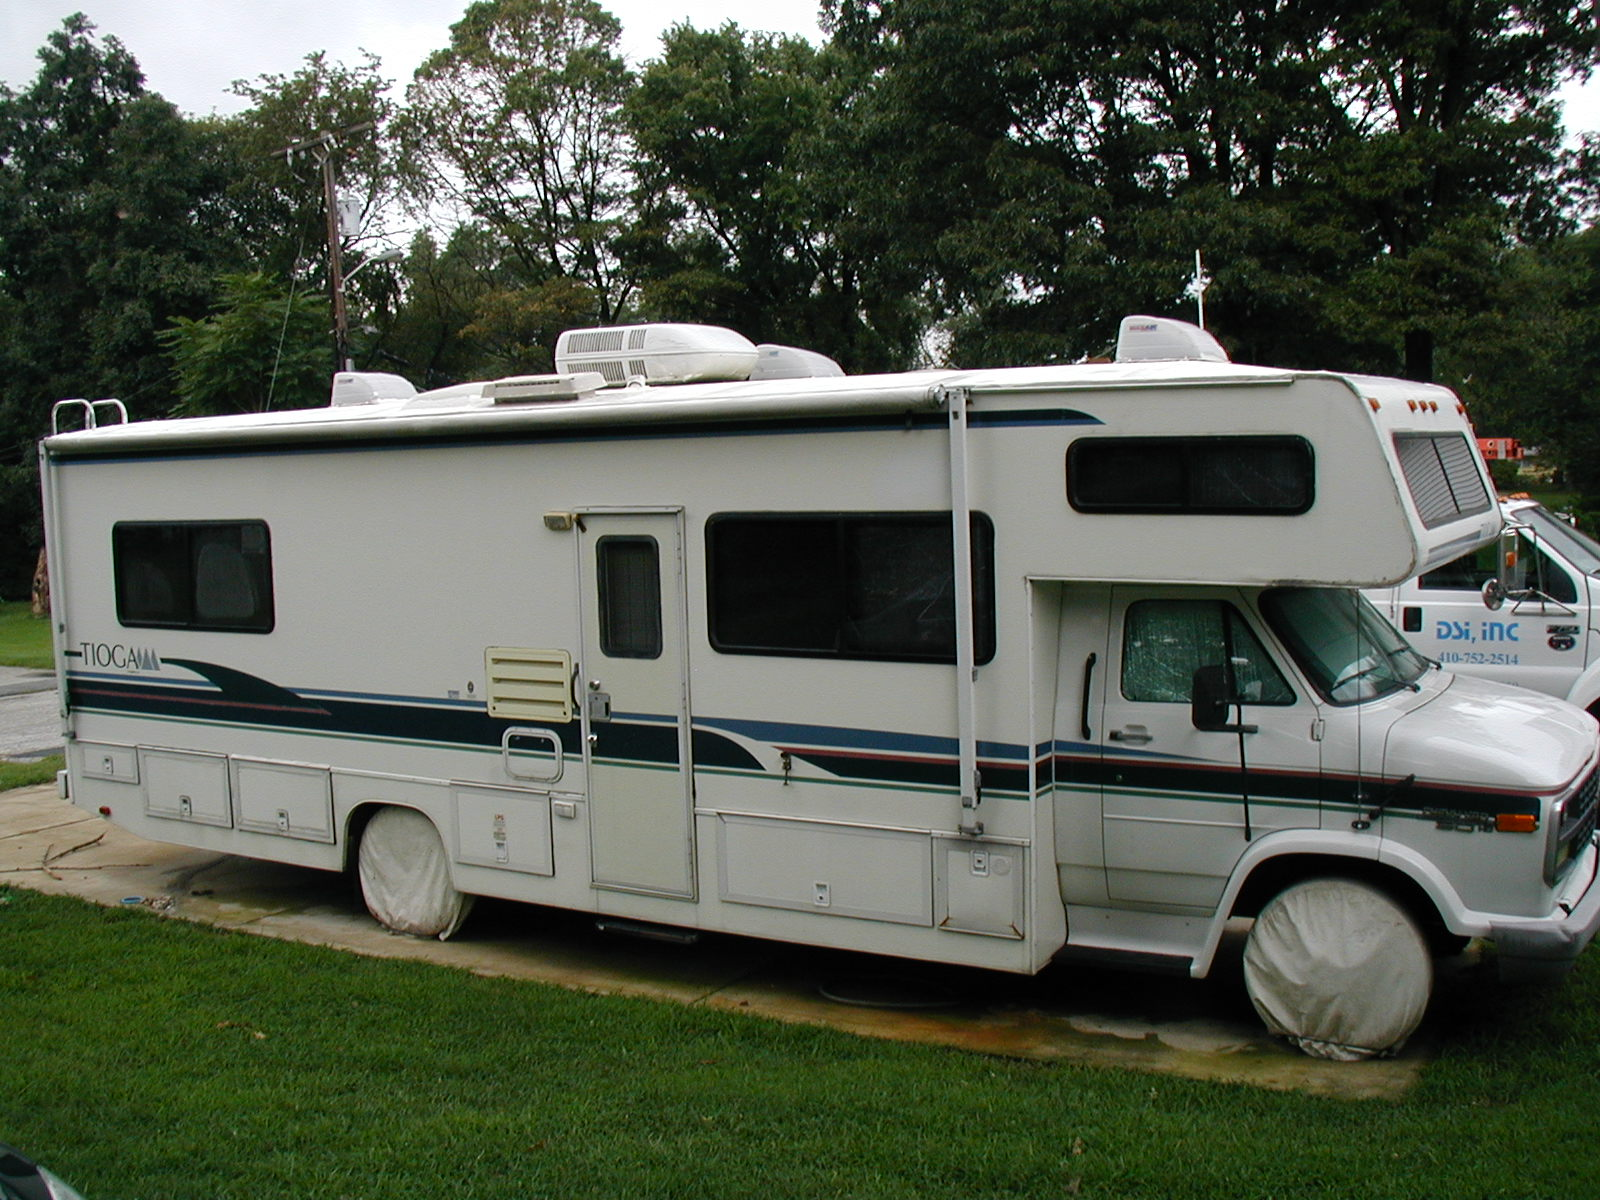 1996 Fleetwood Tioga Motorhome For Sale In Glen Burnie